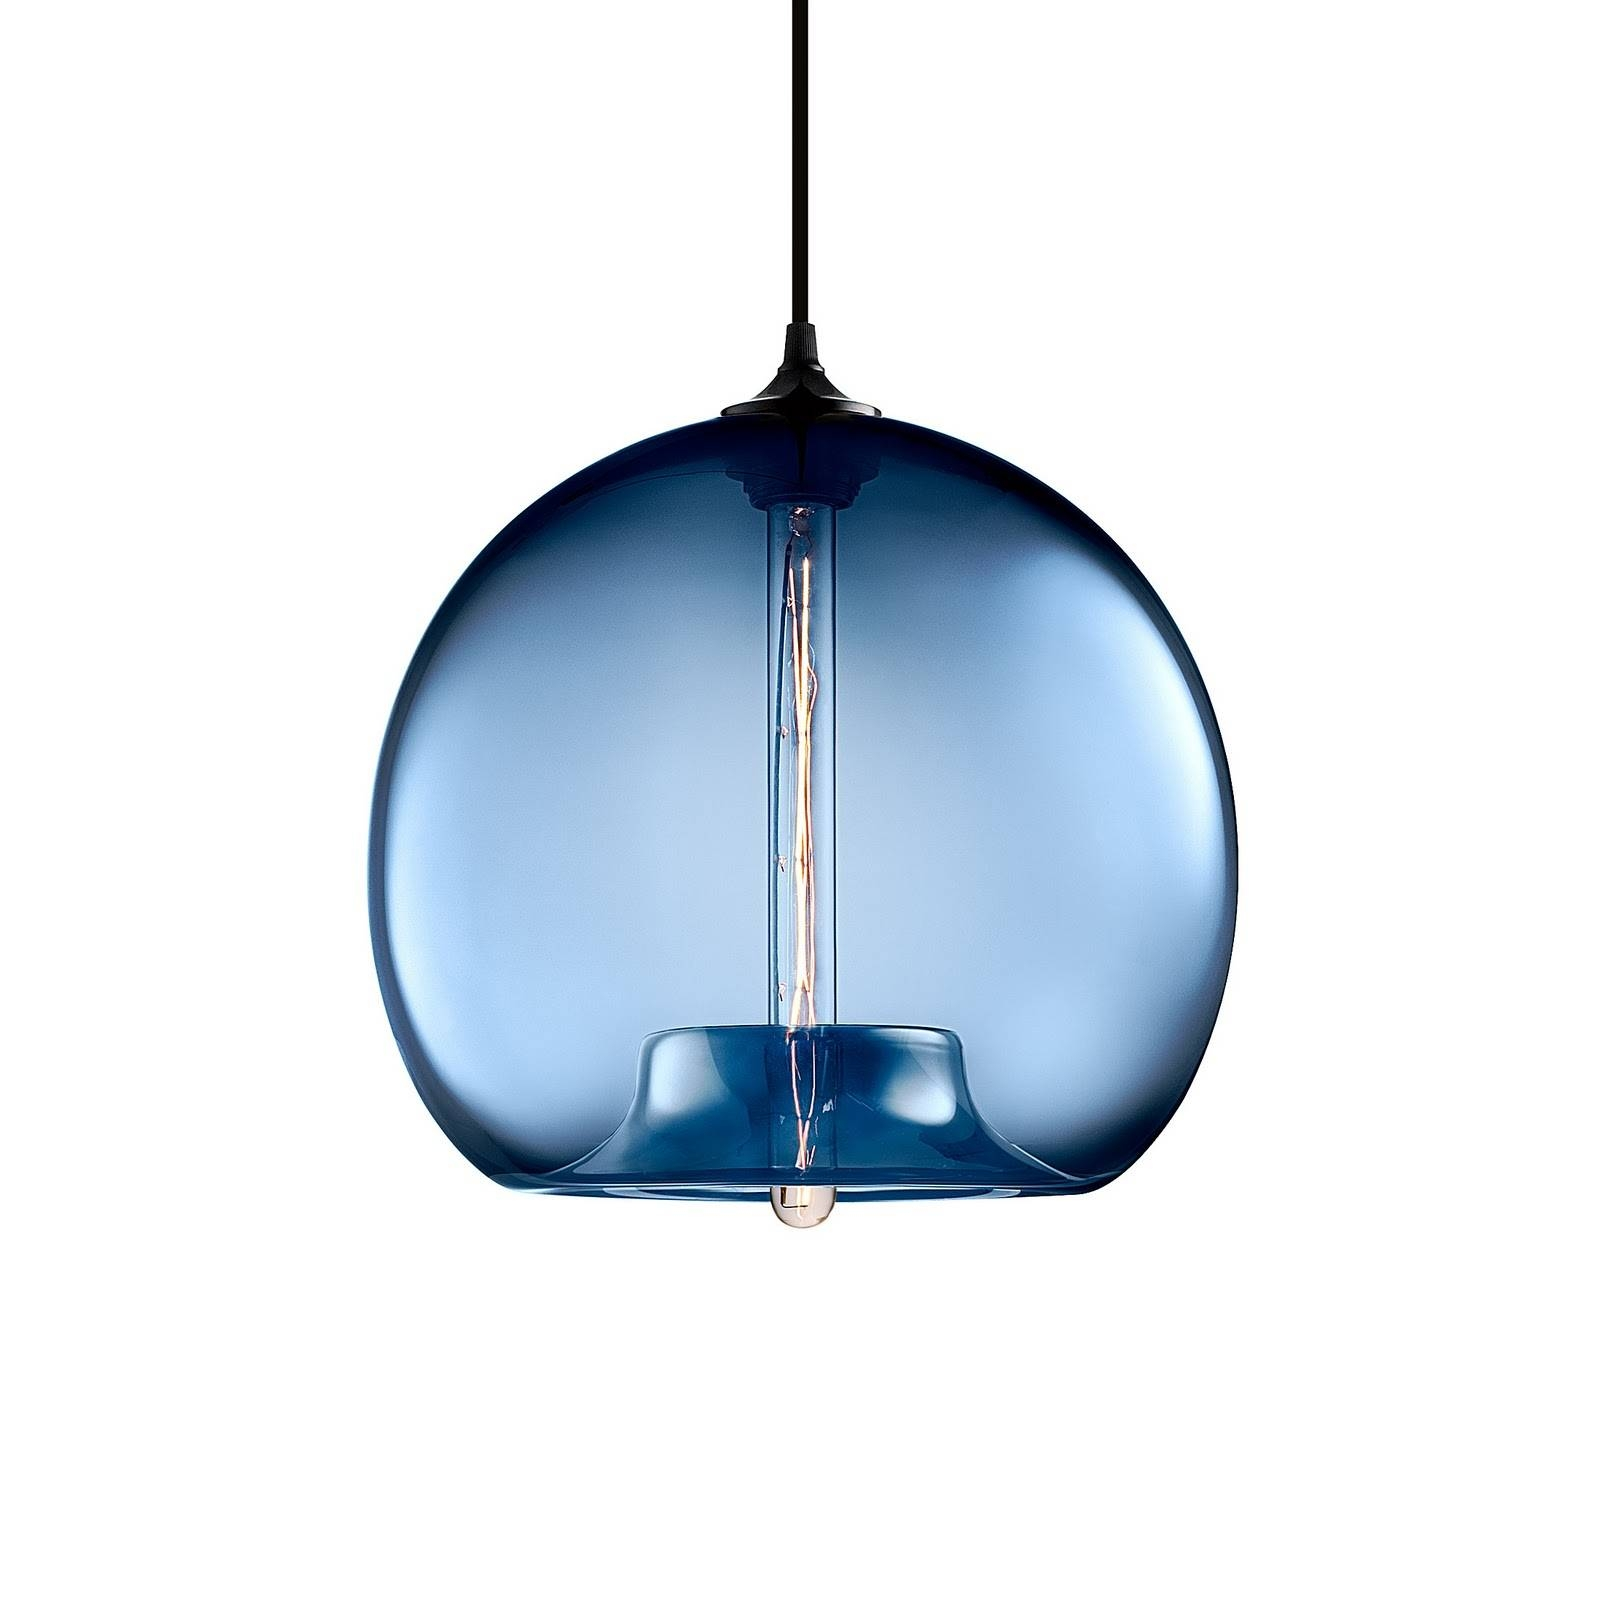 Home Lighting : Gorgeous Blown Glass Pendant Lighting For Kitchen with Blown Glass Pendant Lights Fixtures (Image 13 of 15)